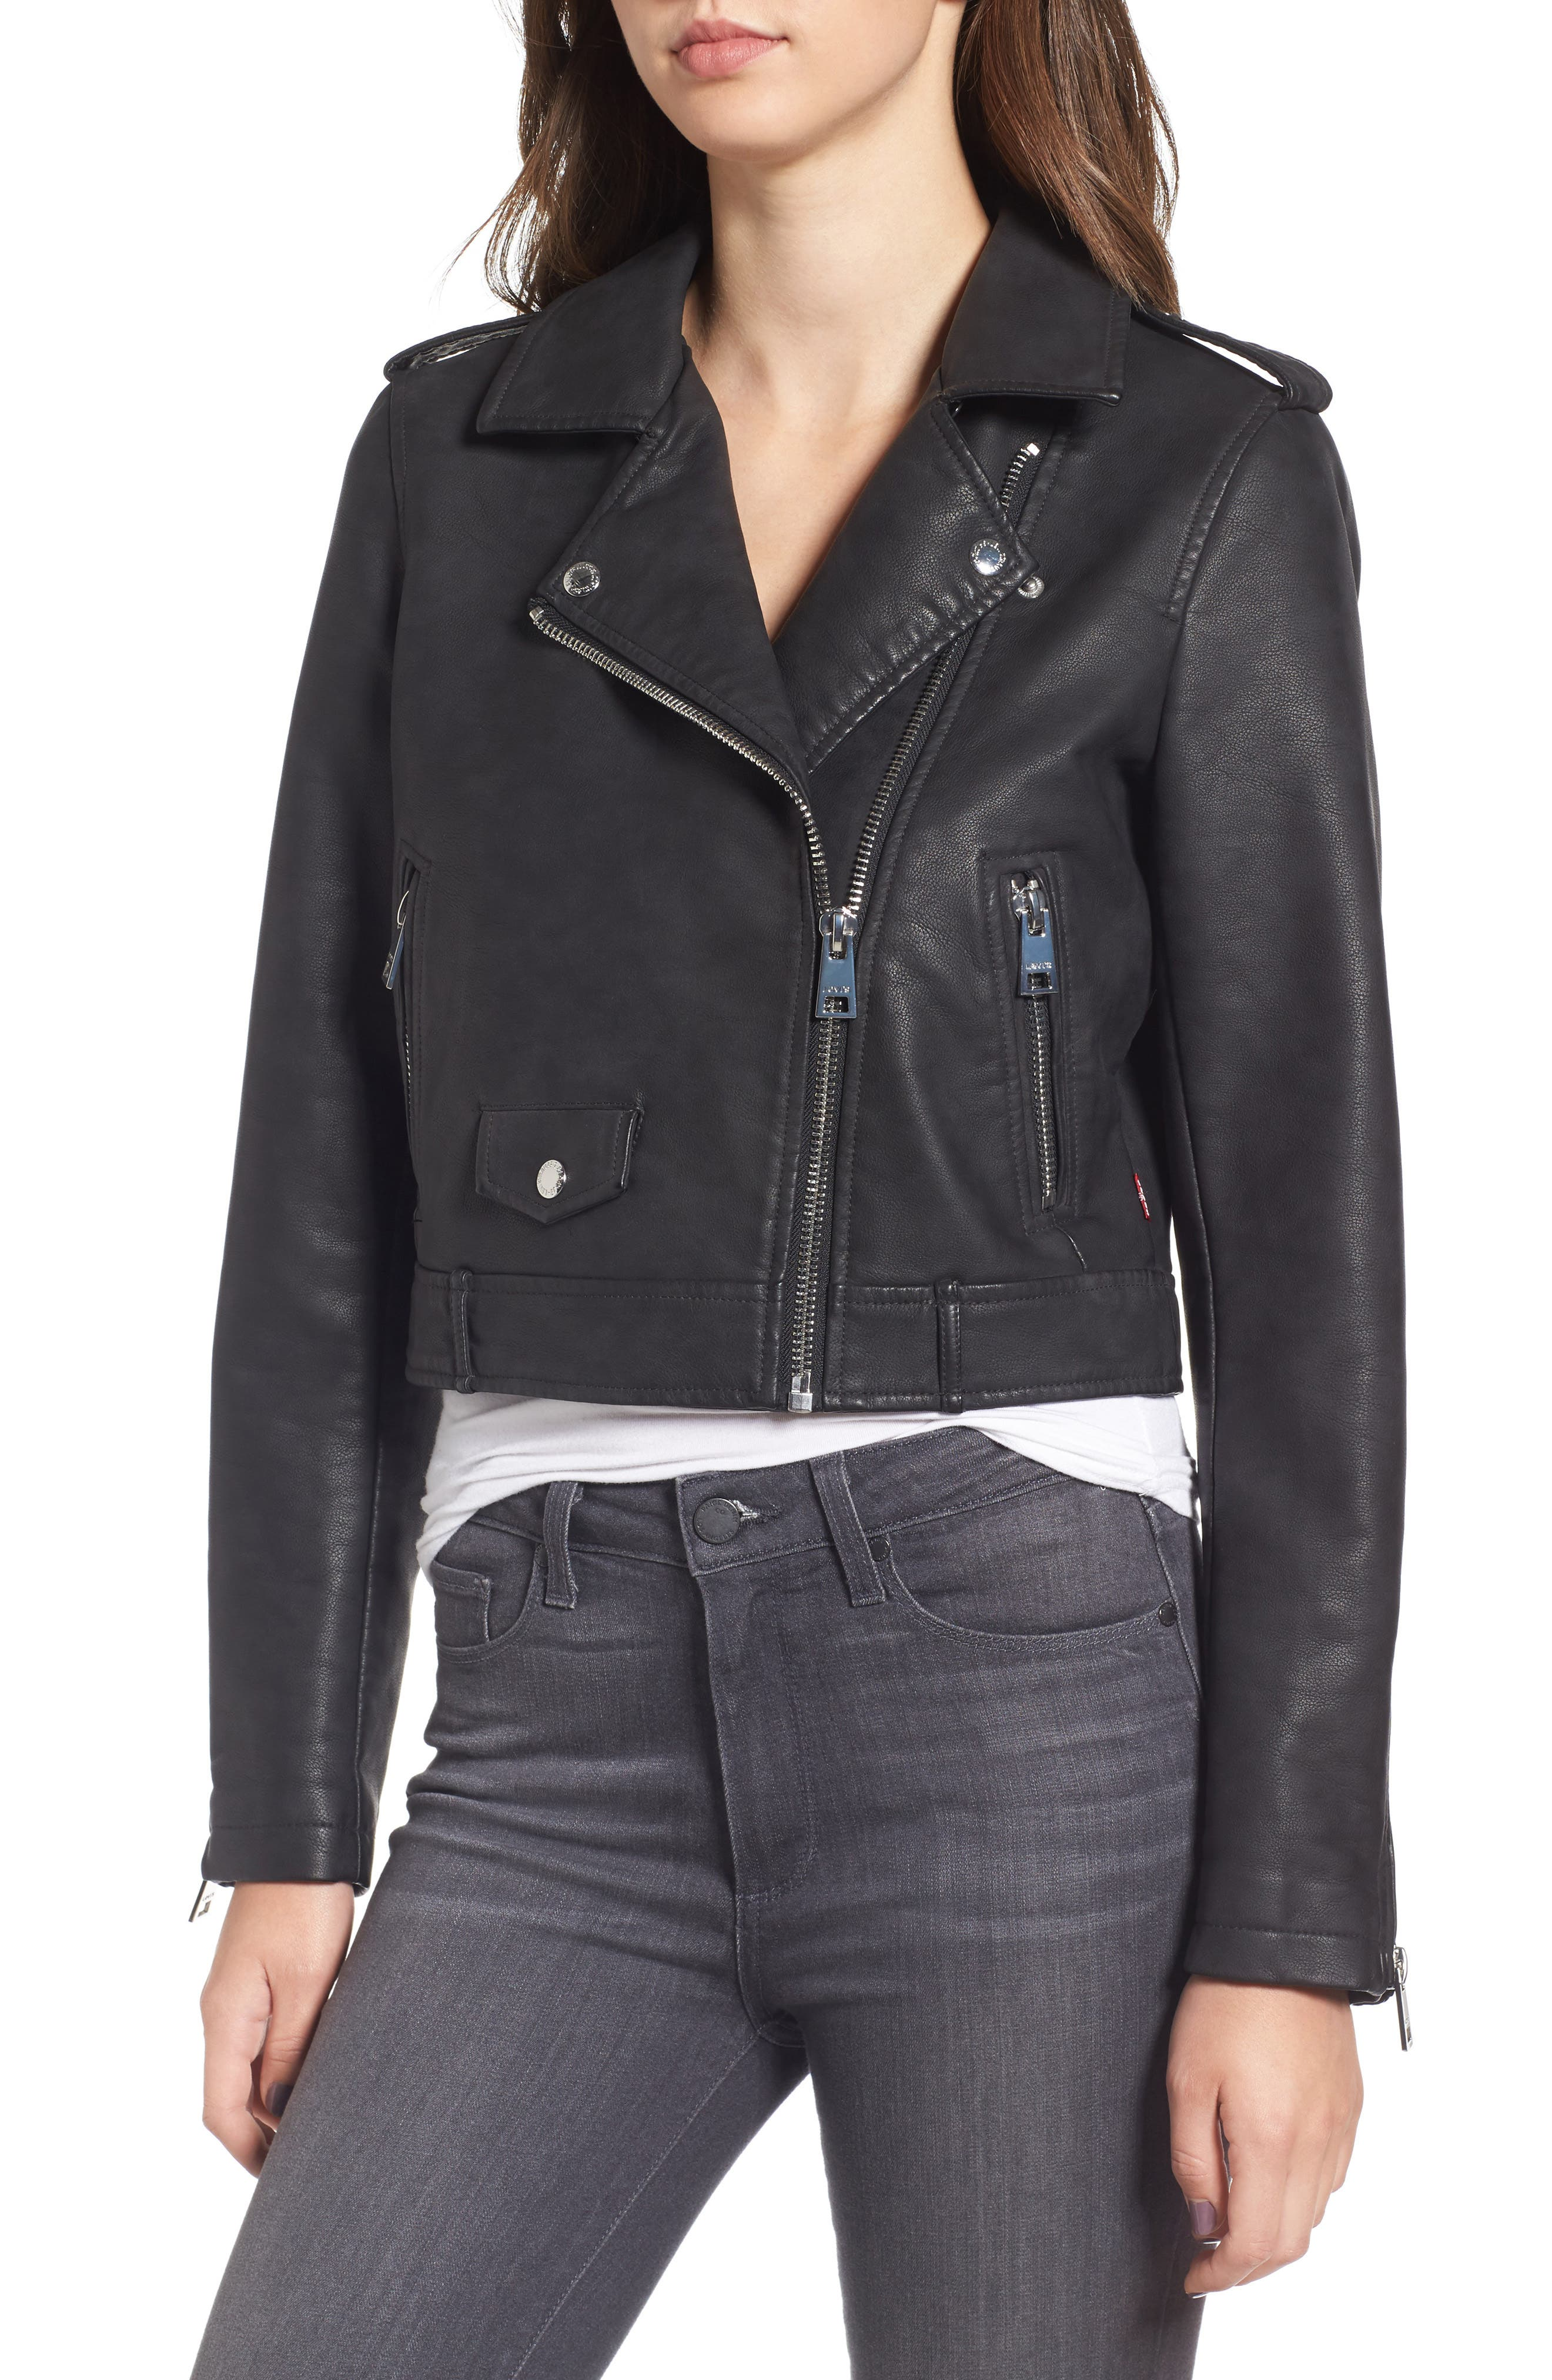 Levis<sup>®</sup> Sherpa Faux Leather Moto Jacket with Faux Fur Collar,                             Alternate thumbnail 4, color,                             Black